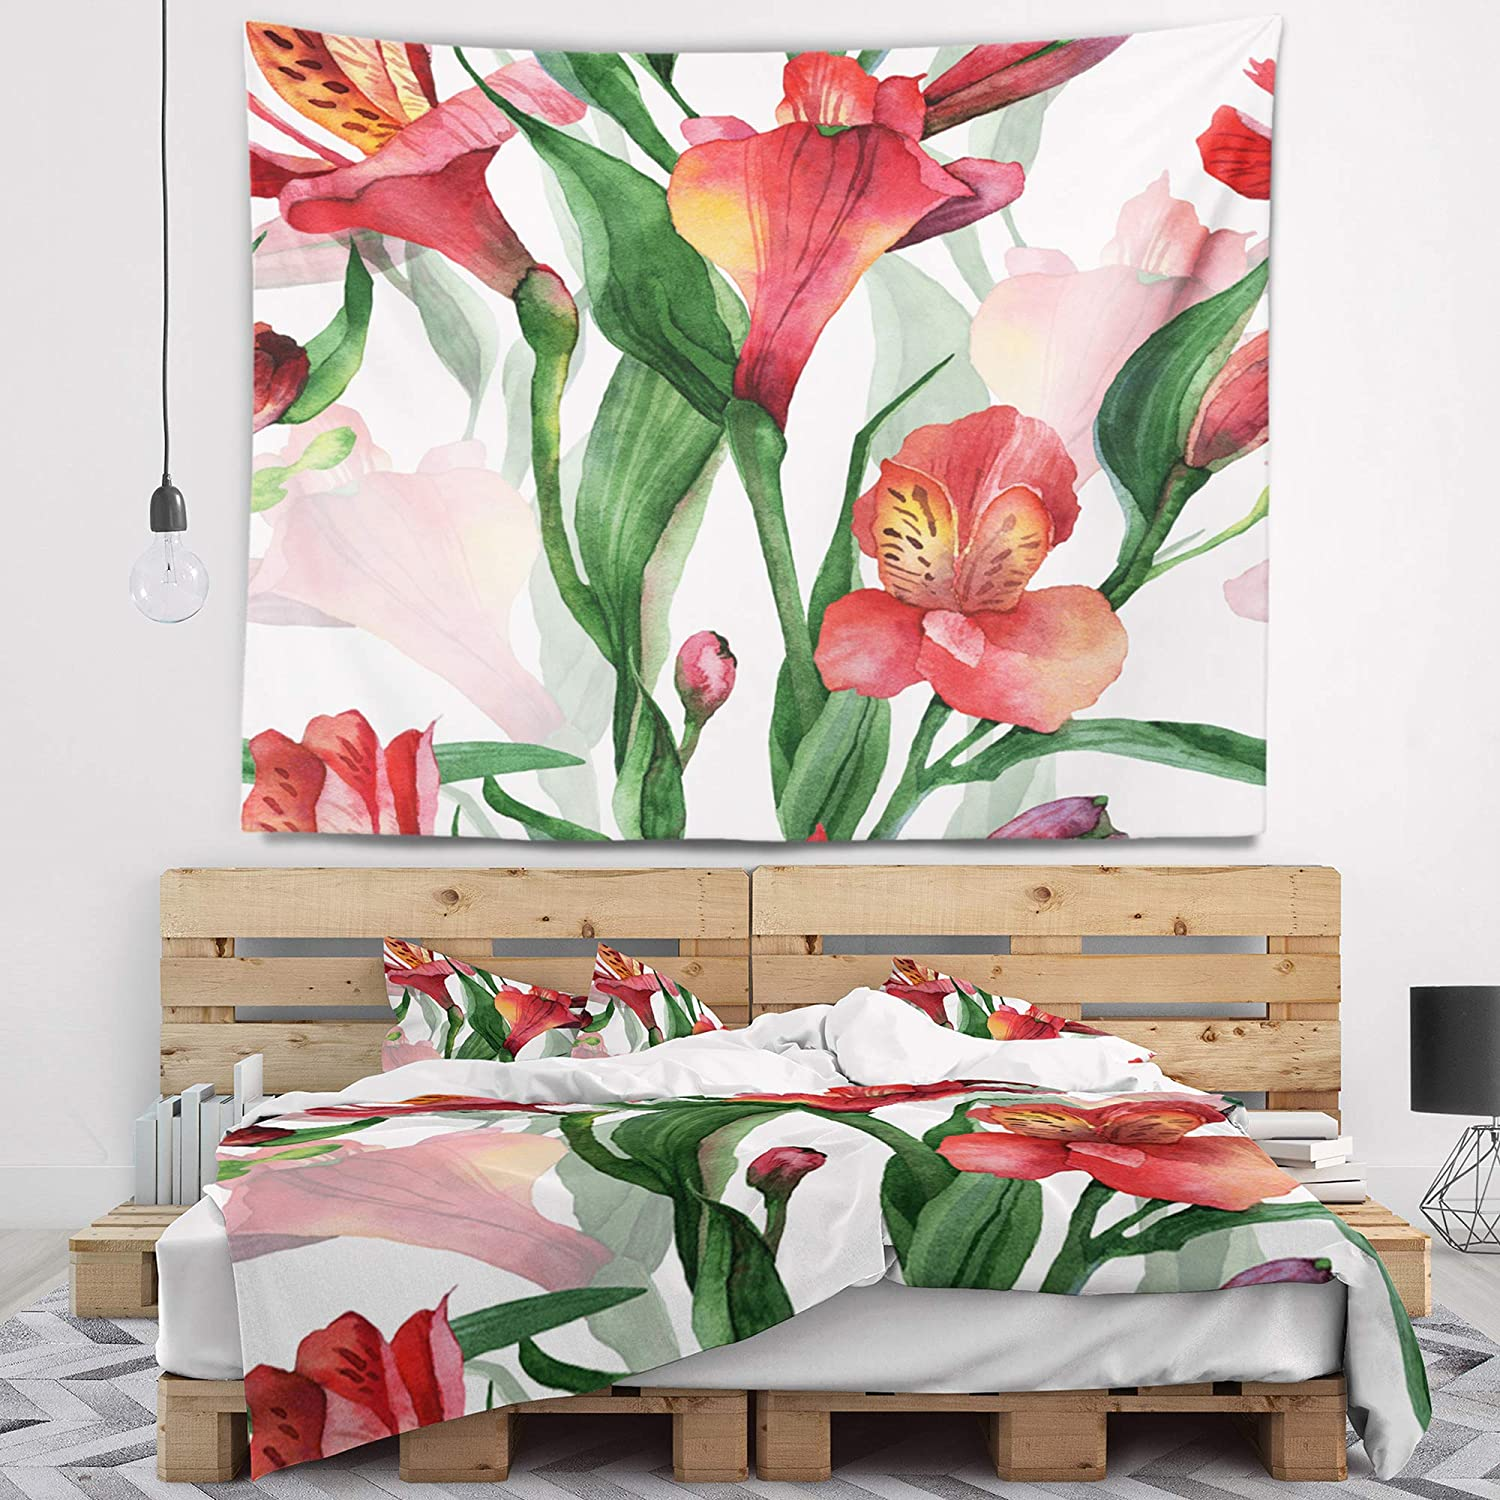 Designart TAP7407-39-32  Red Pattern Floral Blanket D/écor Art for Home and Office Wall Tapestry Medium 39 x 32 Created On Lightweight Polyester Fabric